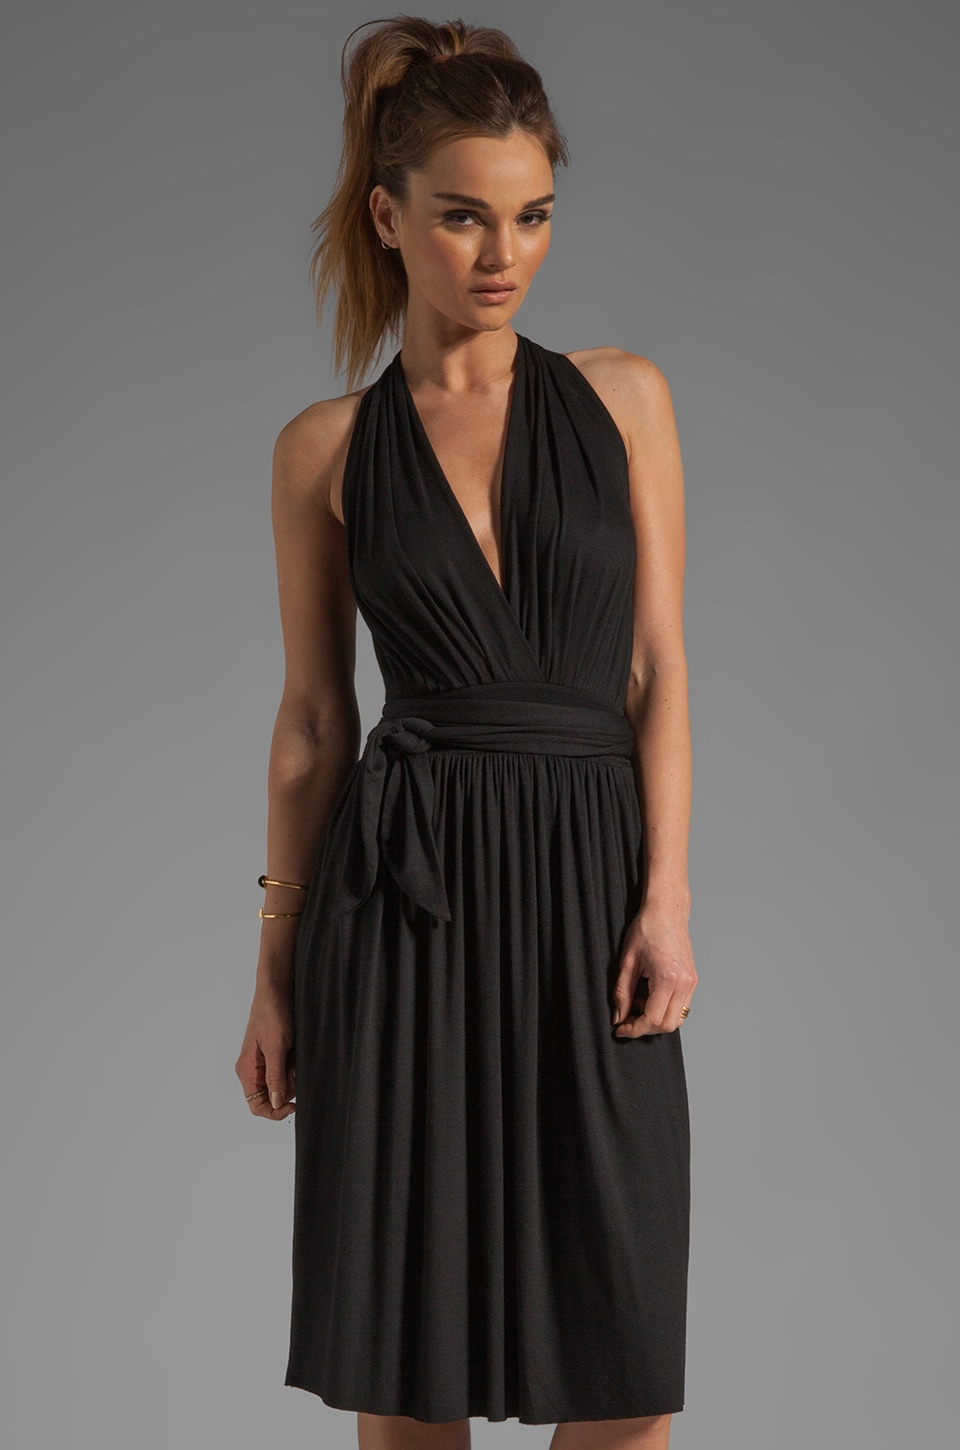 Rachel Pally Brigitta Halter Dress in Black